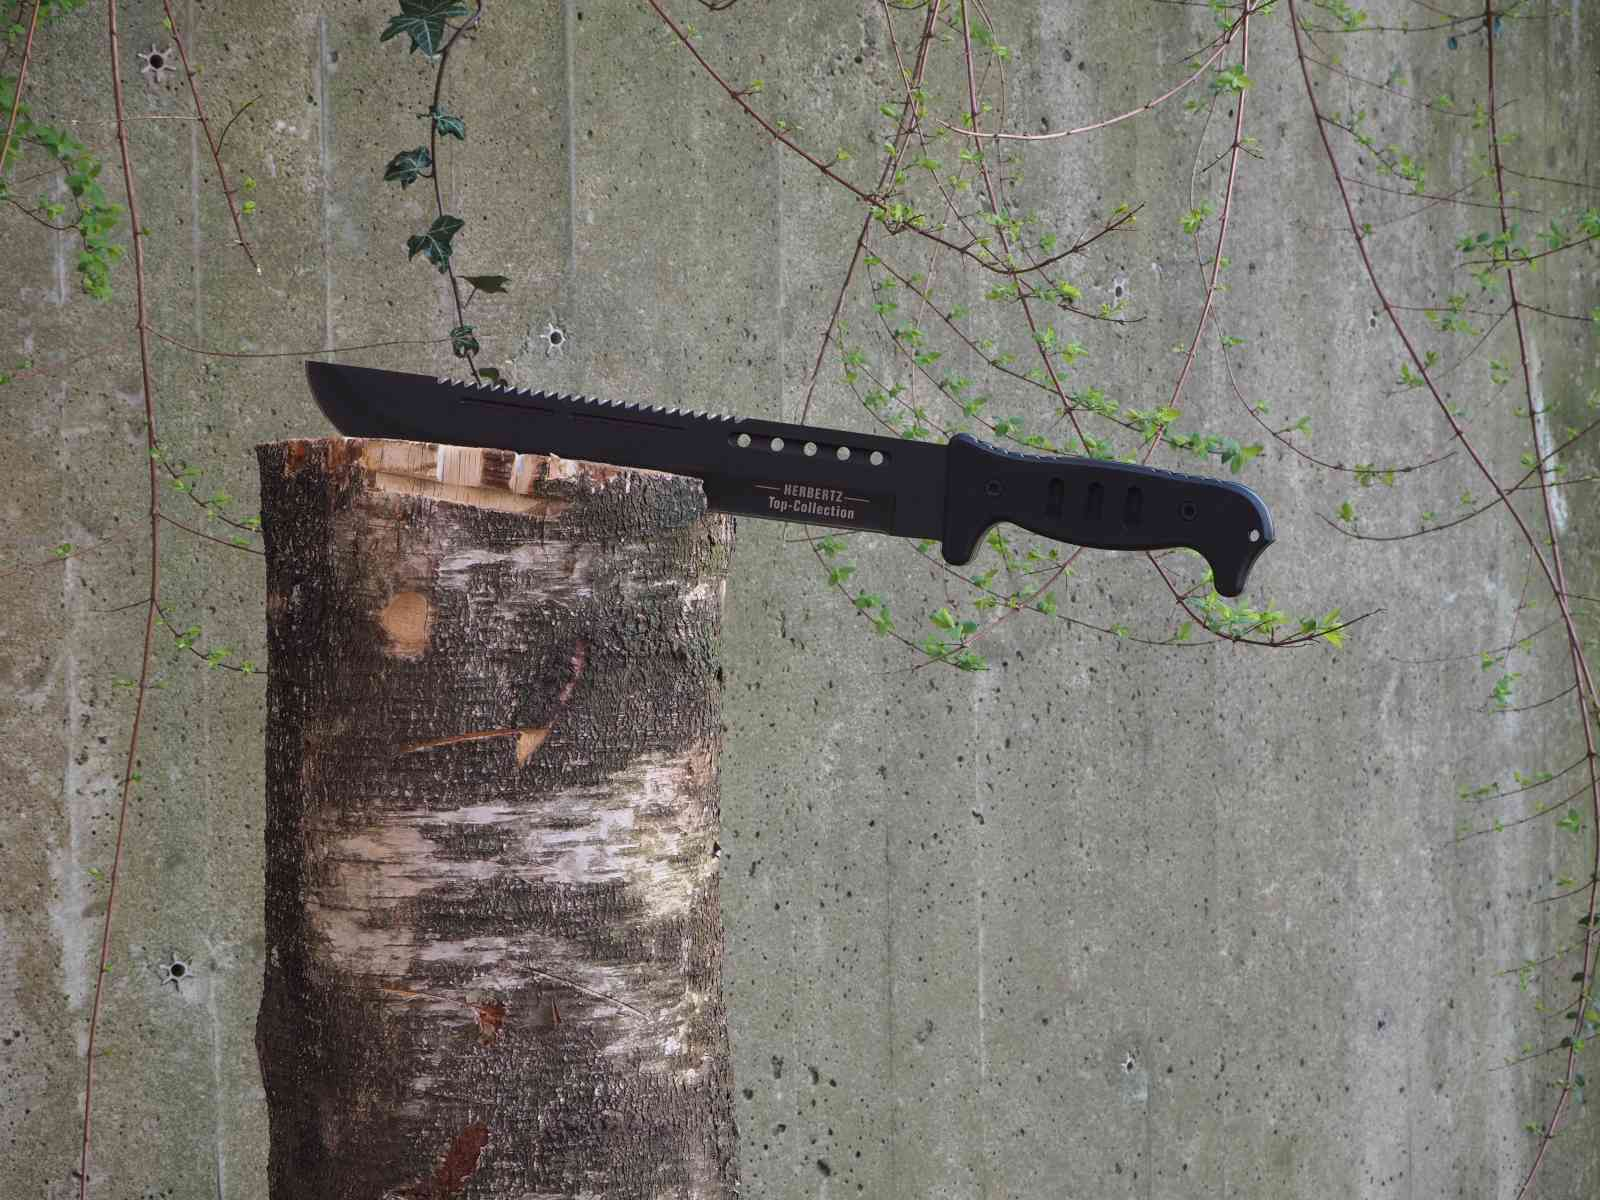 Herbertz Top-Collection Machete